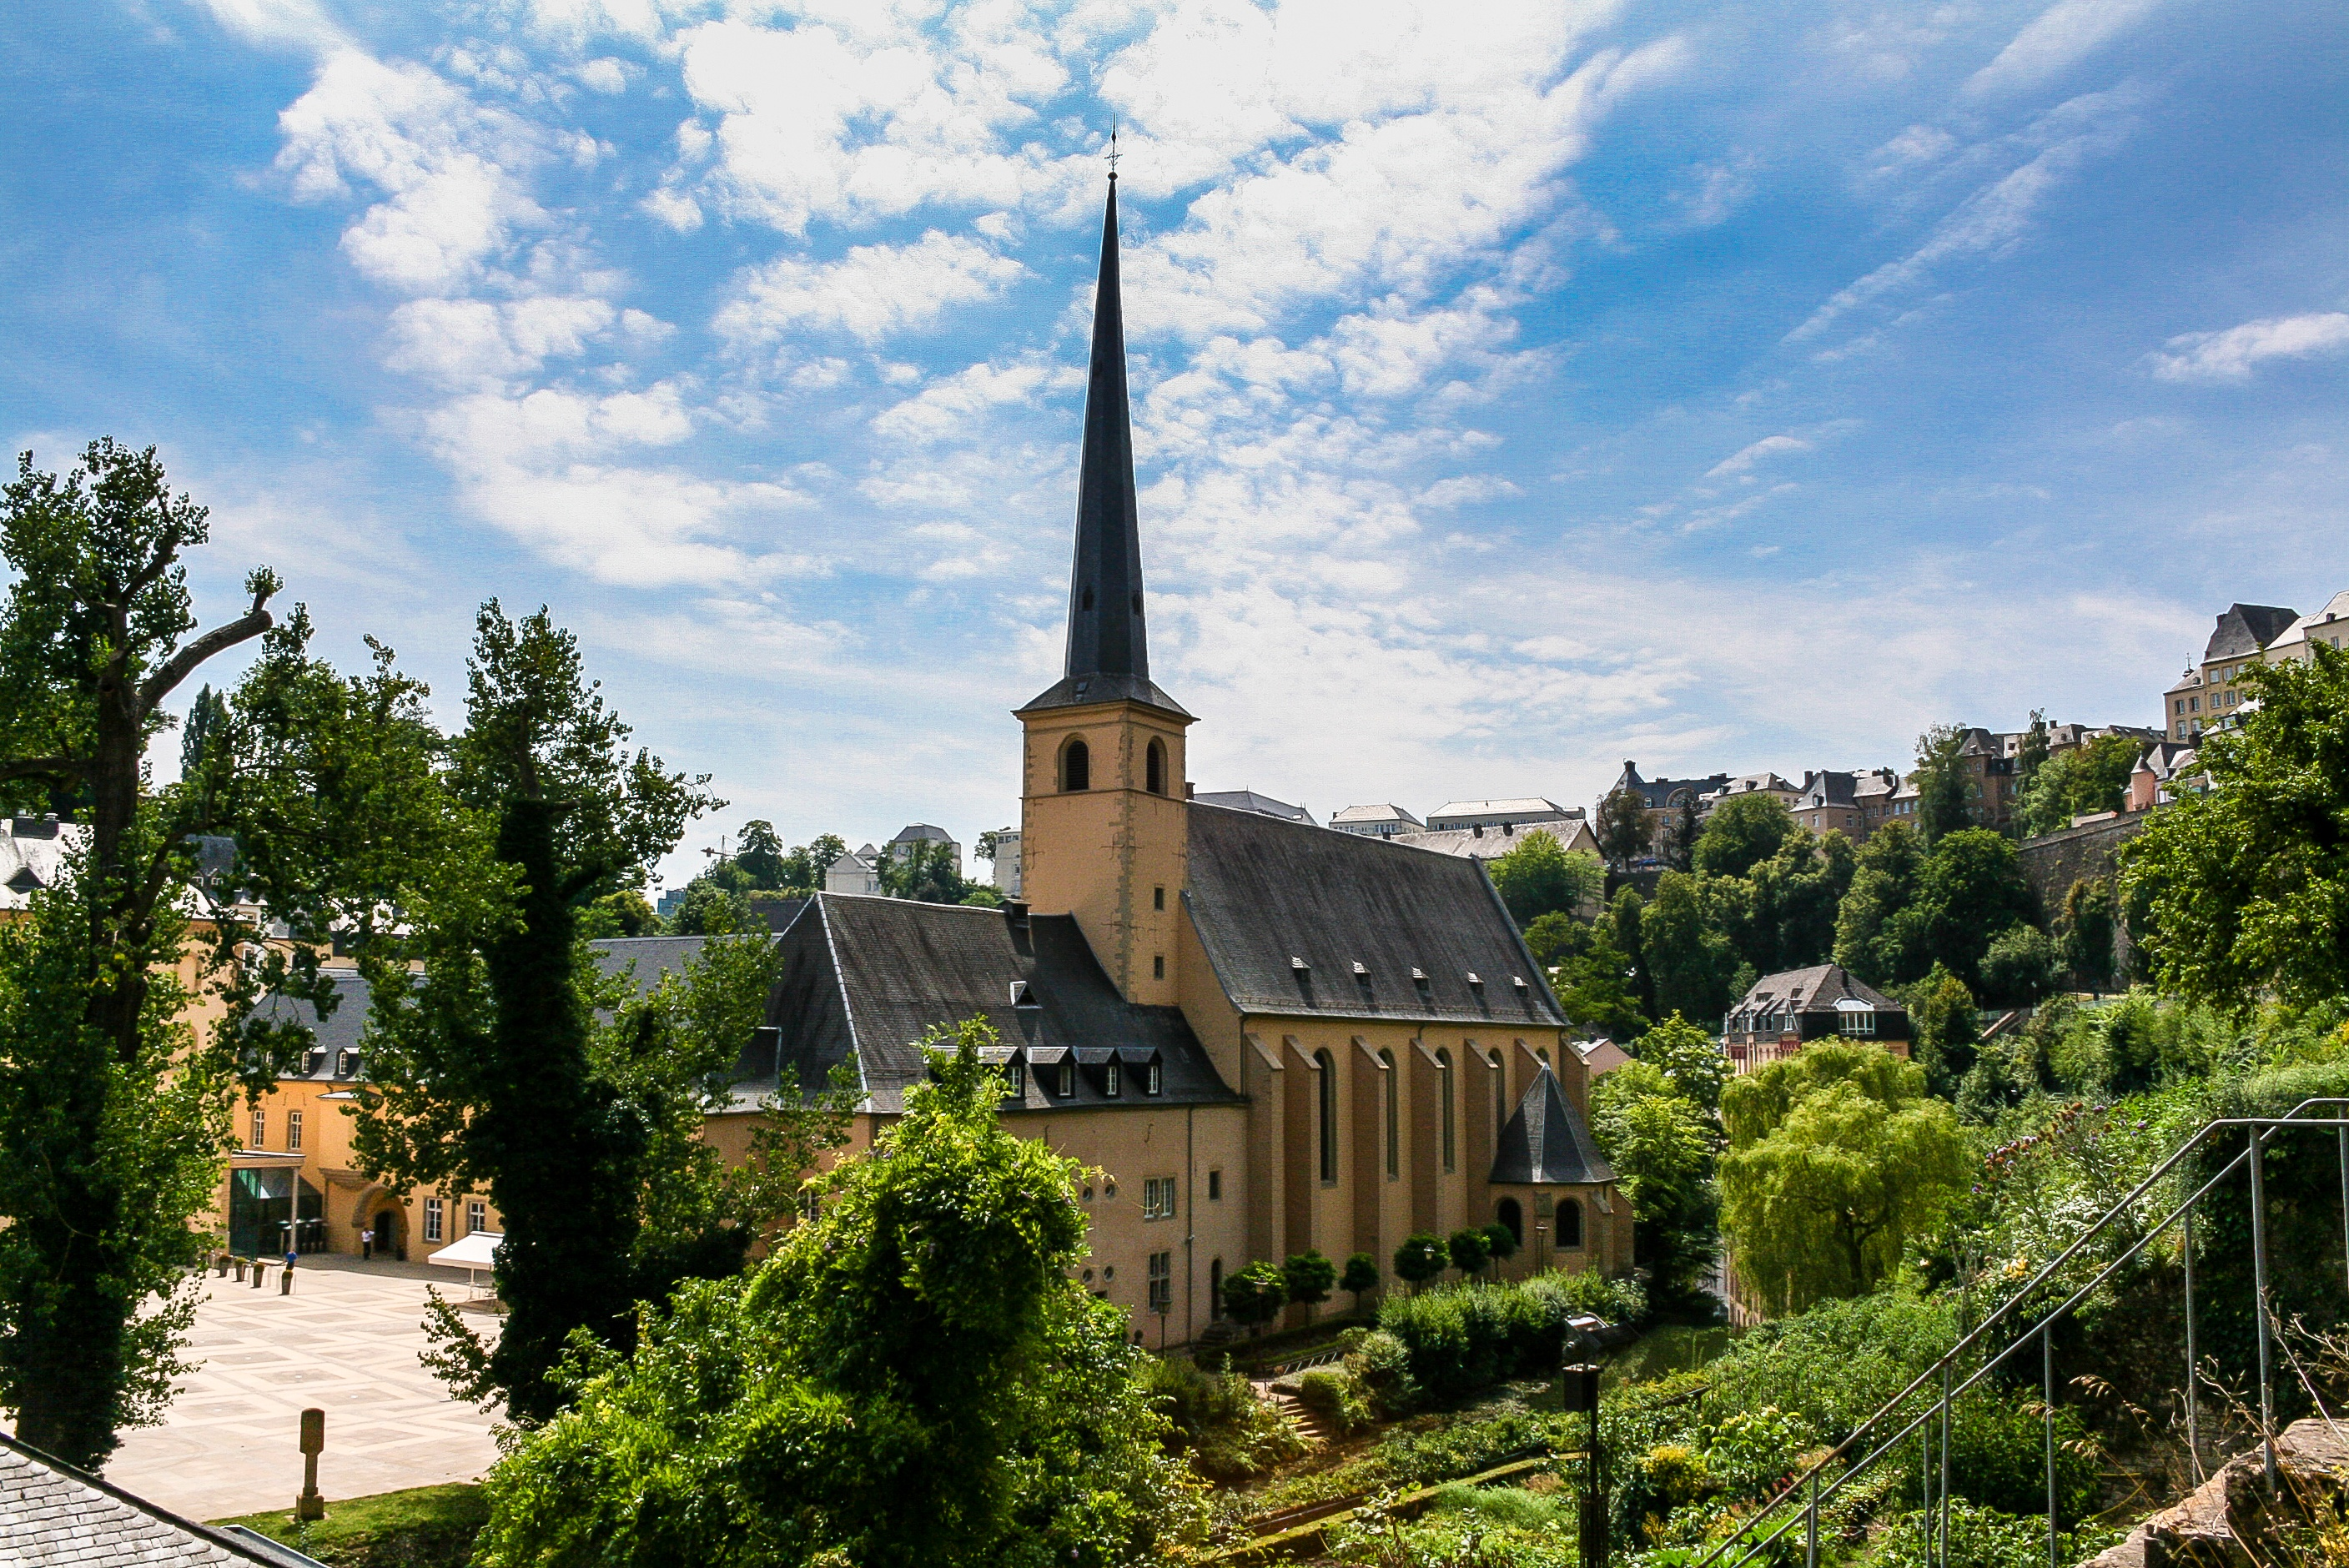 This is an image of St. John's Church in Luxembourg City